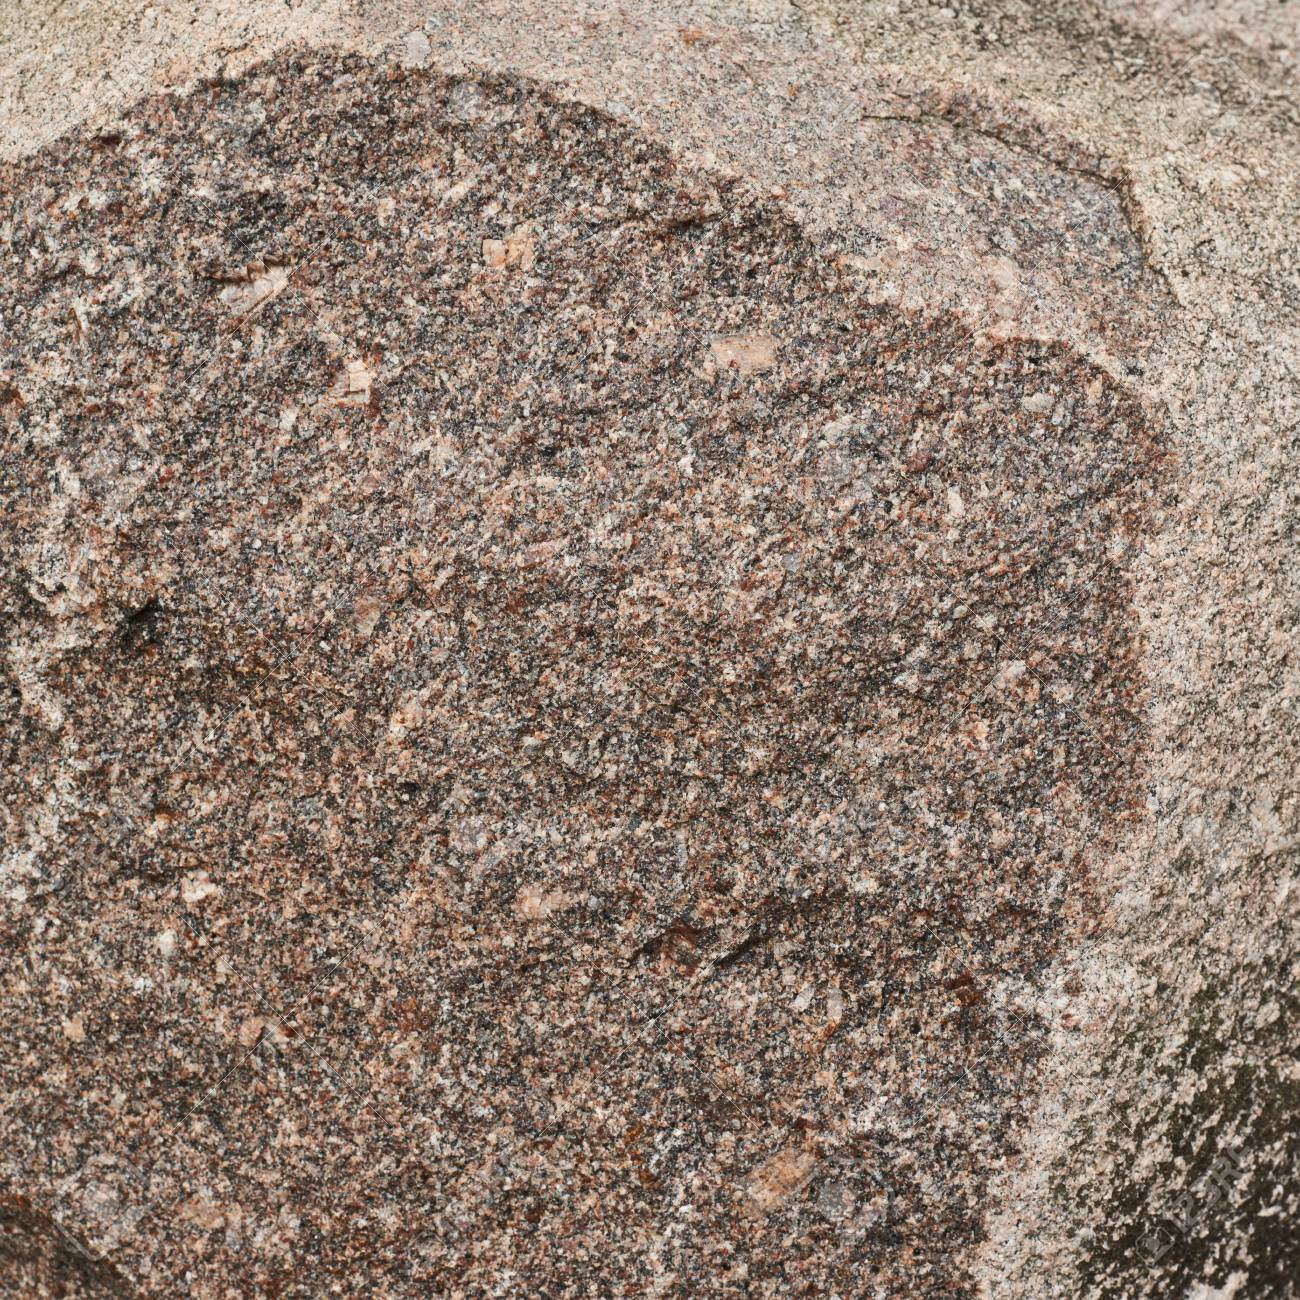 Stone texture surface as abstract background Stock Photo - 21906316